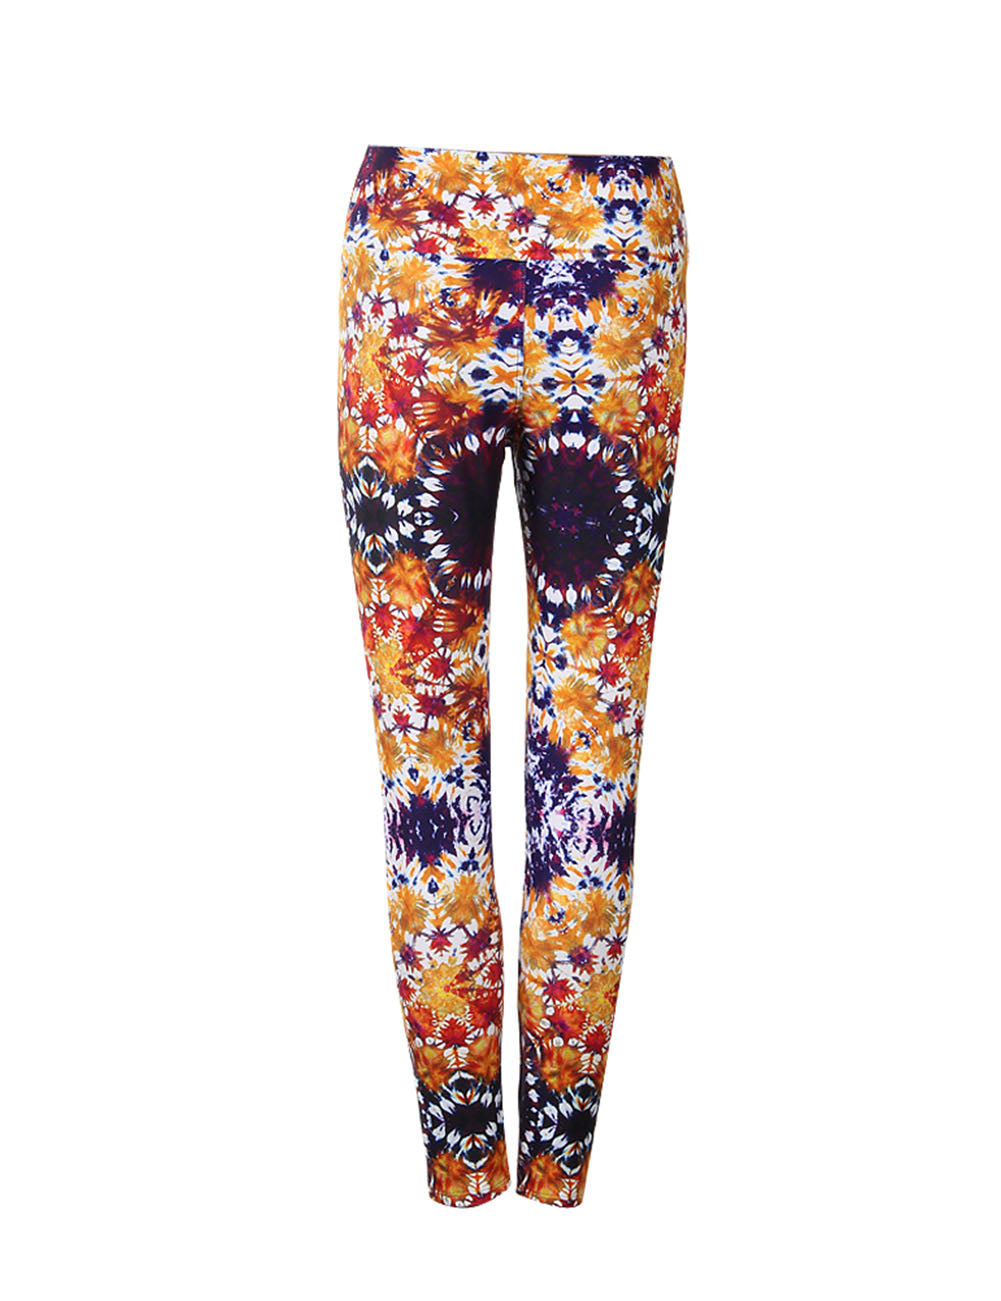 Incredible Abstract Print Stretch Leggings Flat Waist Leisure Wear